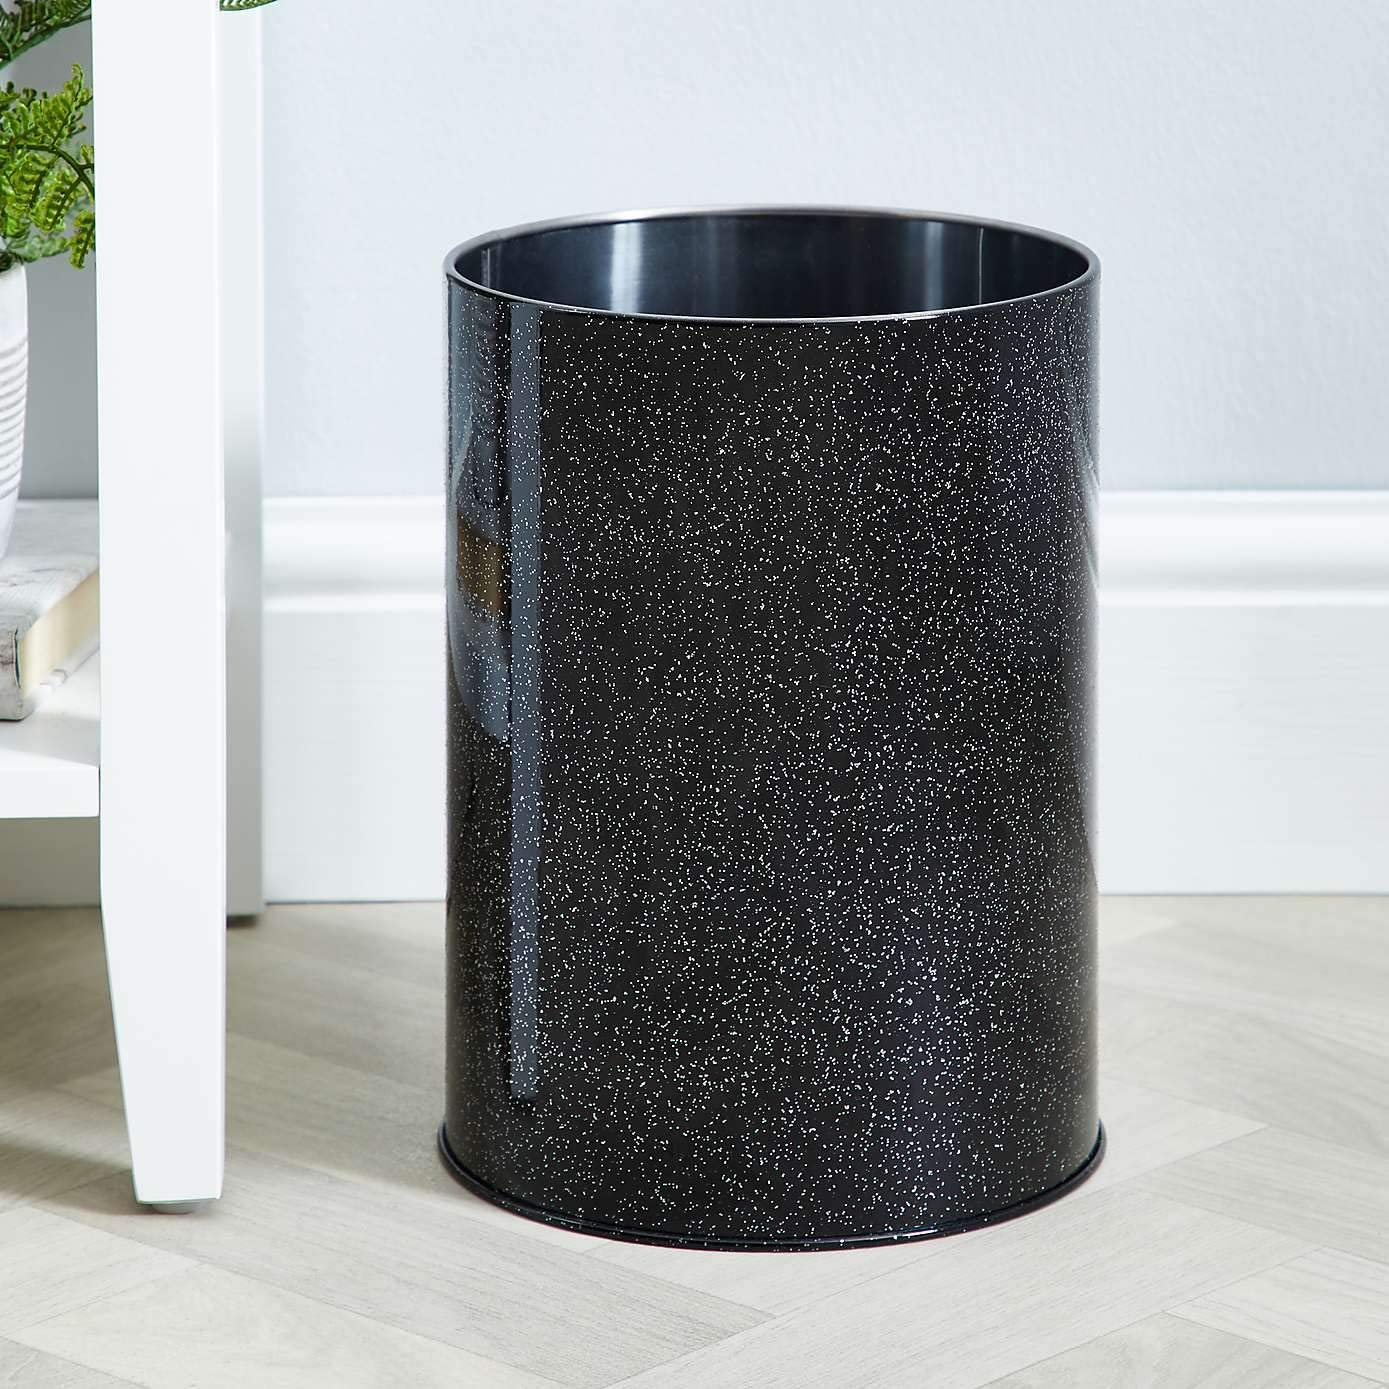 EEMKAY/® New Stainless Steel Bling Black Glitter Waste Paper Bin Perfect For Home And Office 29cm M-19 Black